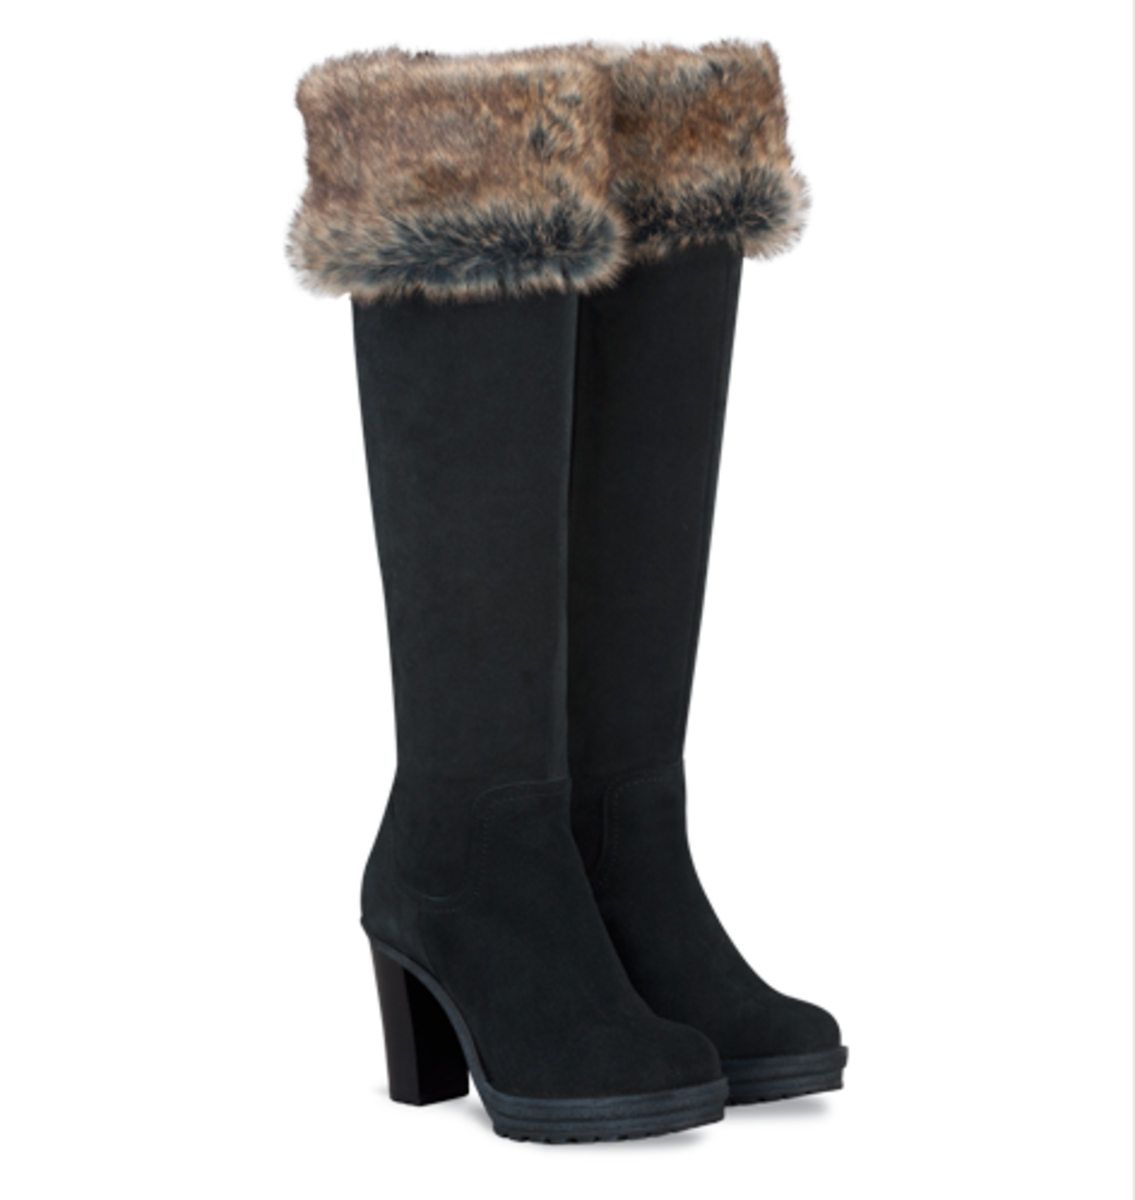 Duo's Farrow Over-the-Knee Boots with Faux Fur Cuff, in Black and Brown Suede - $340